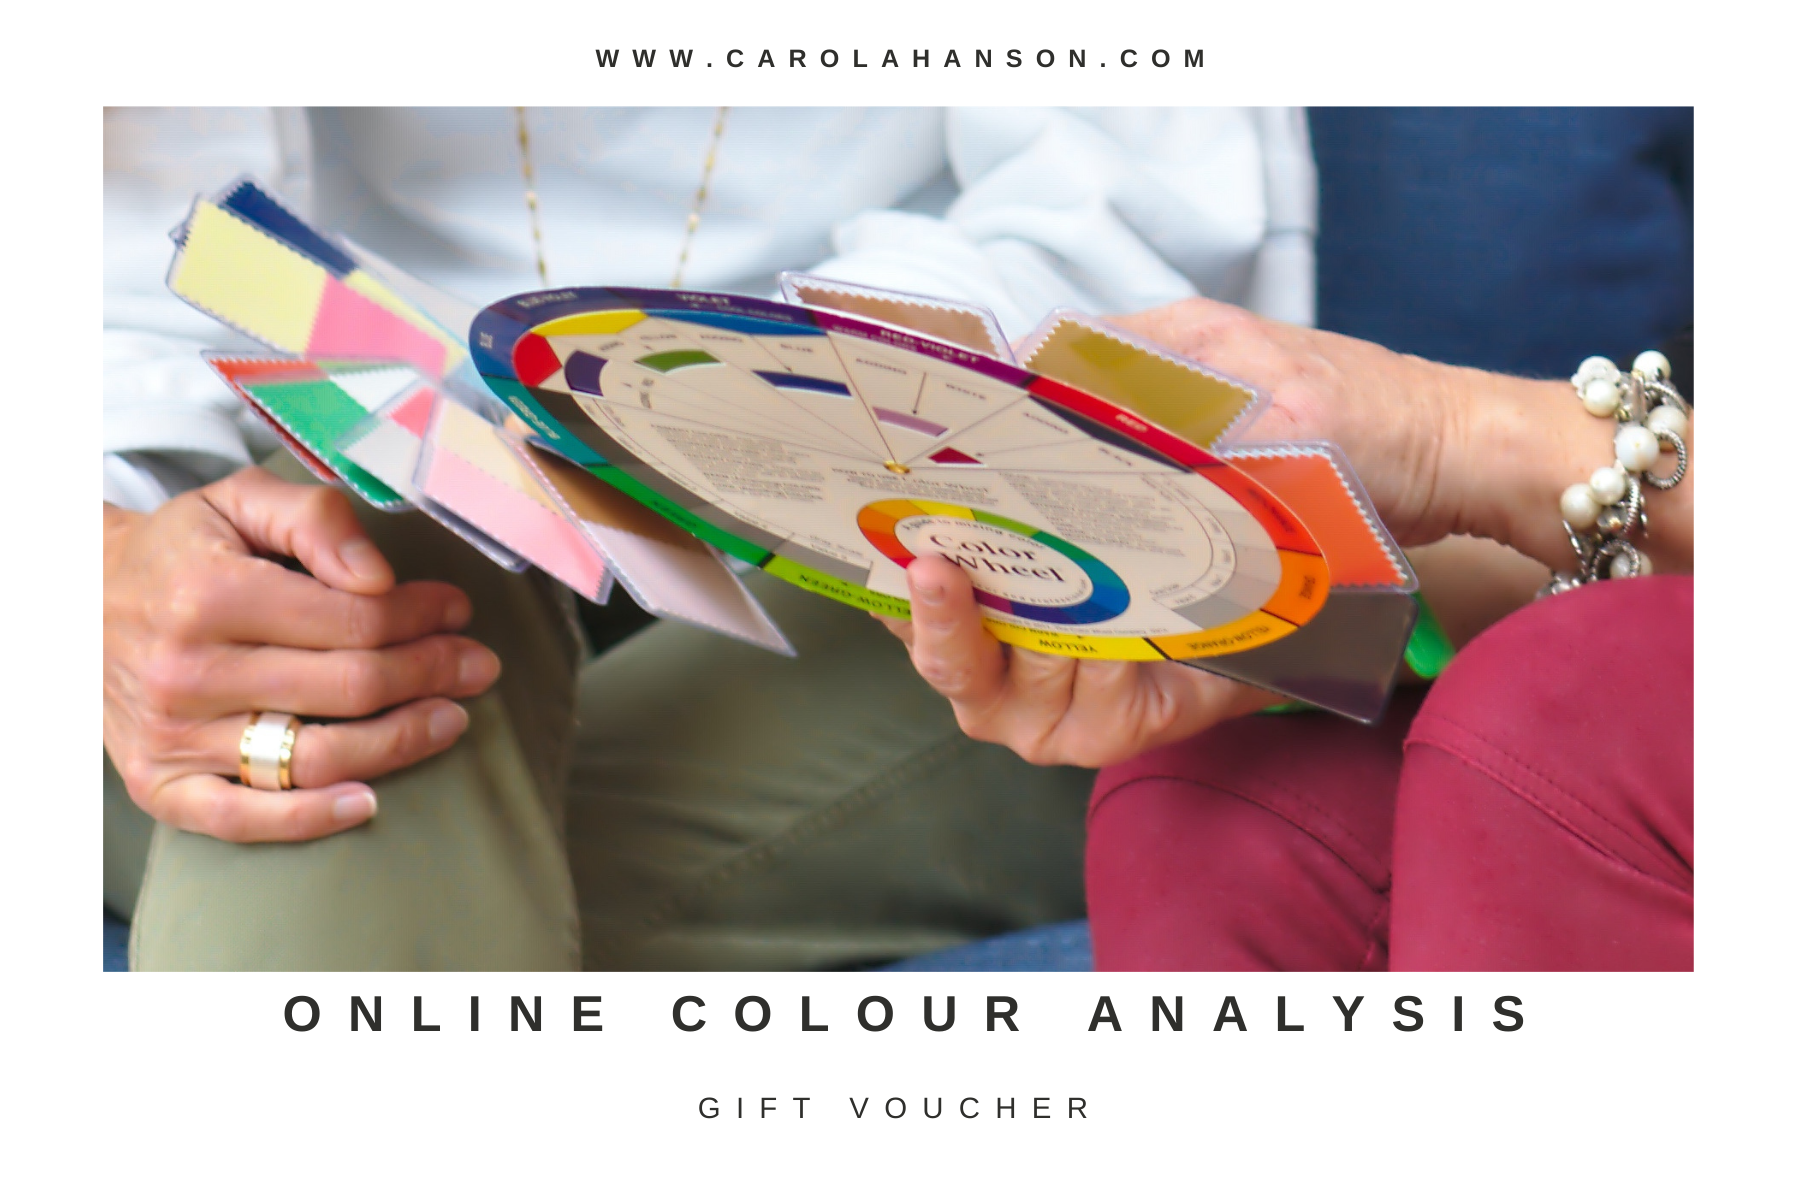 Online colour analysis gift voucher